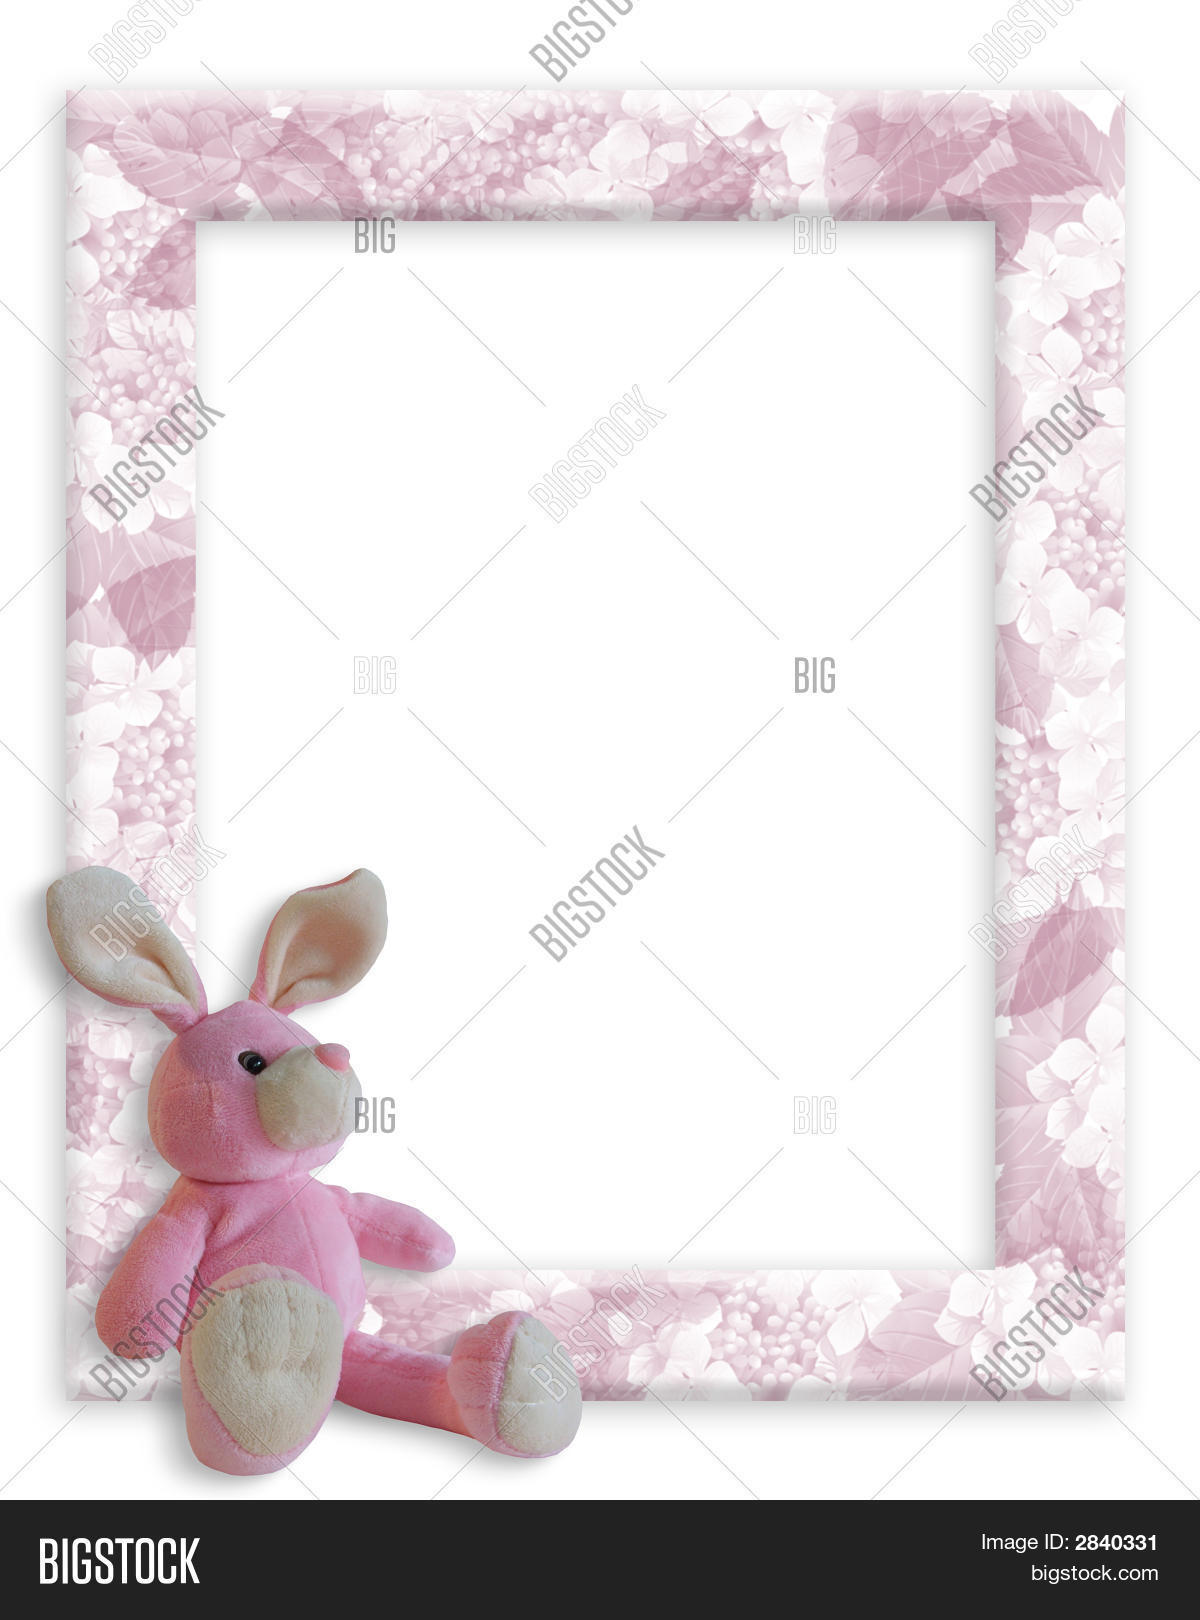 Baby Girl Frame Bunny Image & Photo (Free Trial) | Bigstock